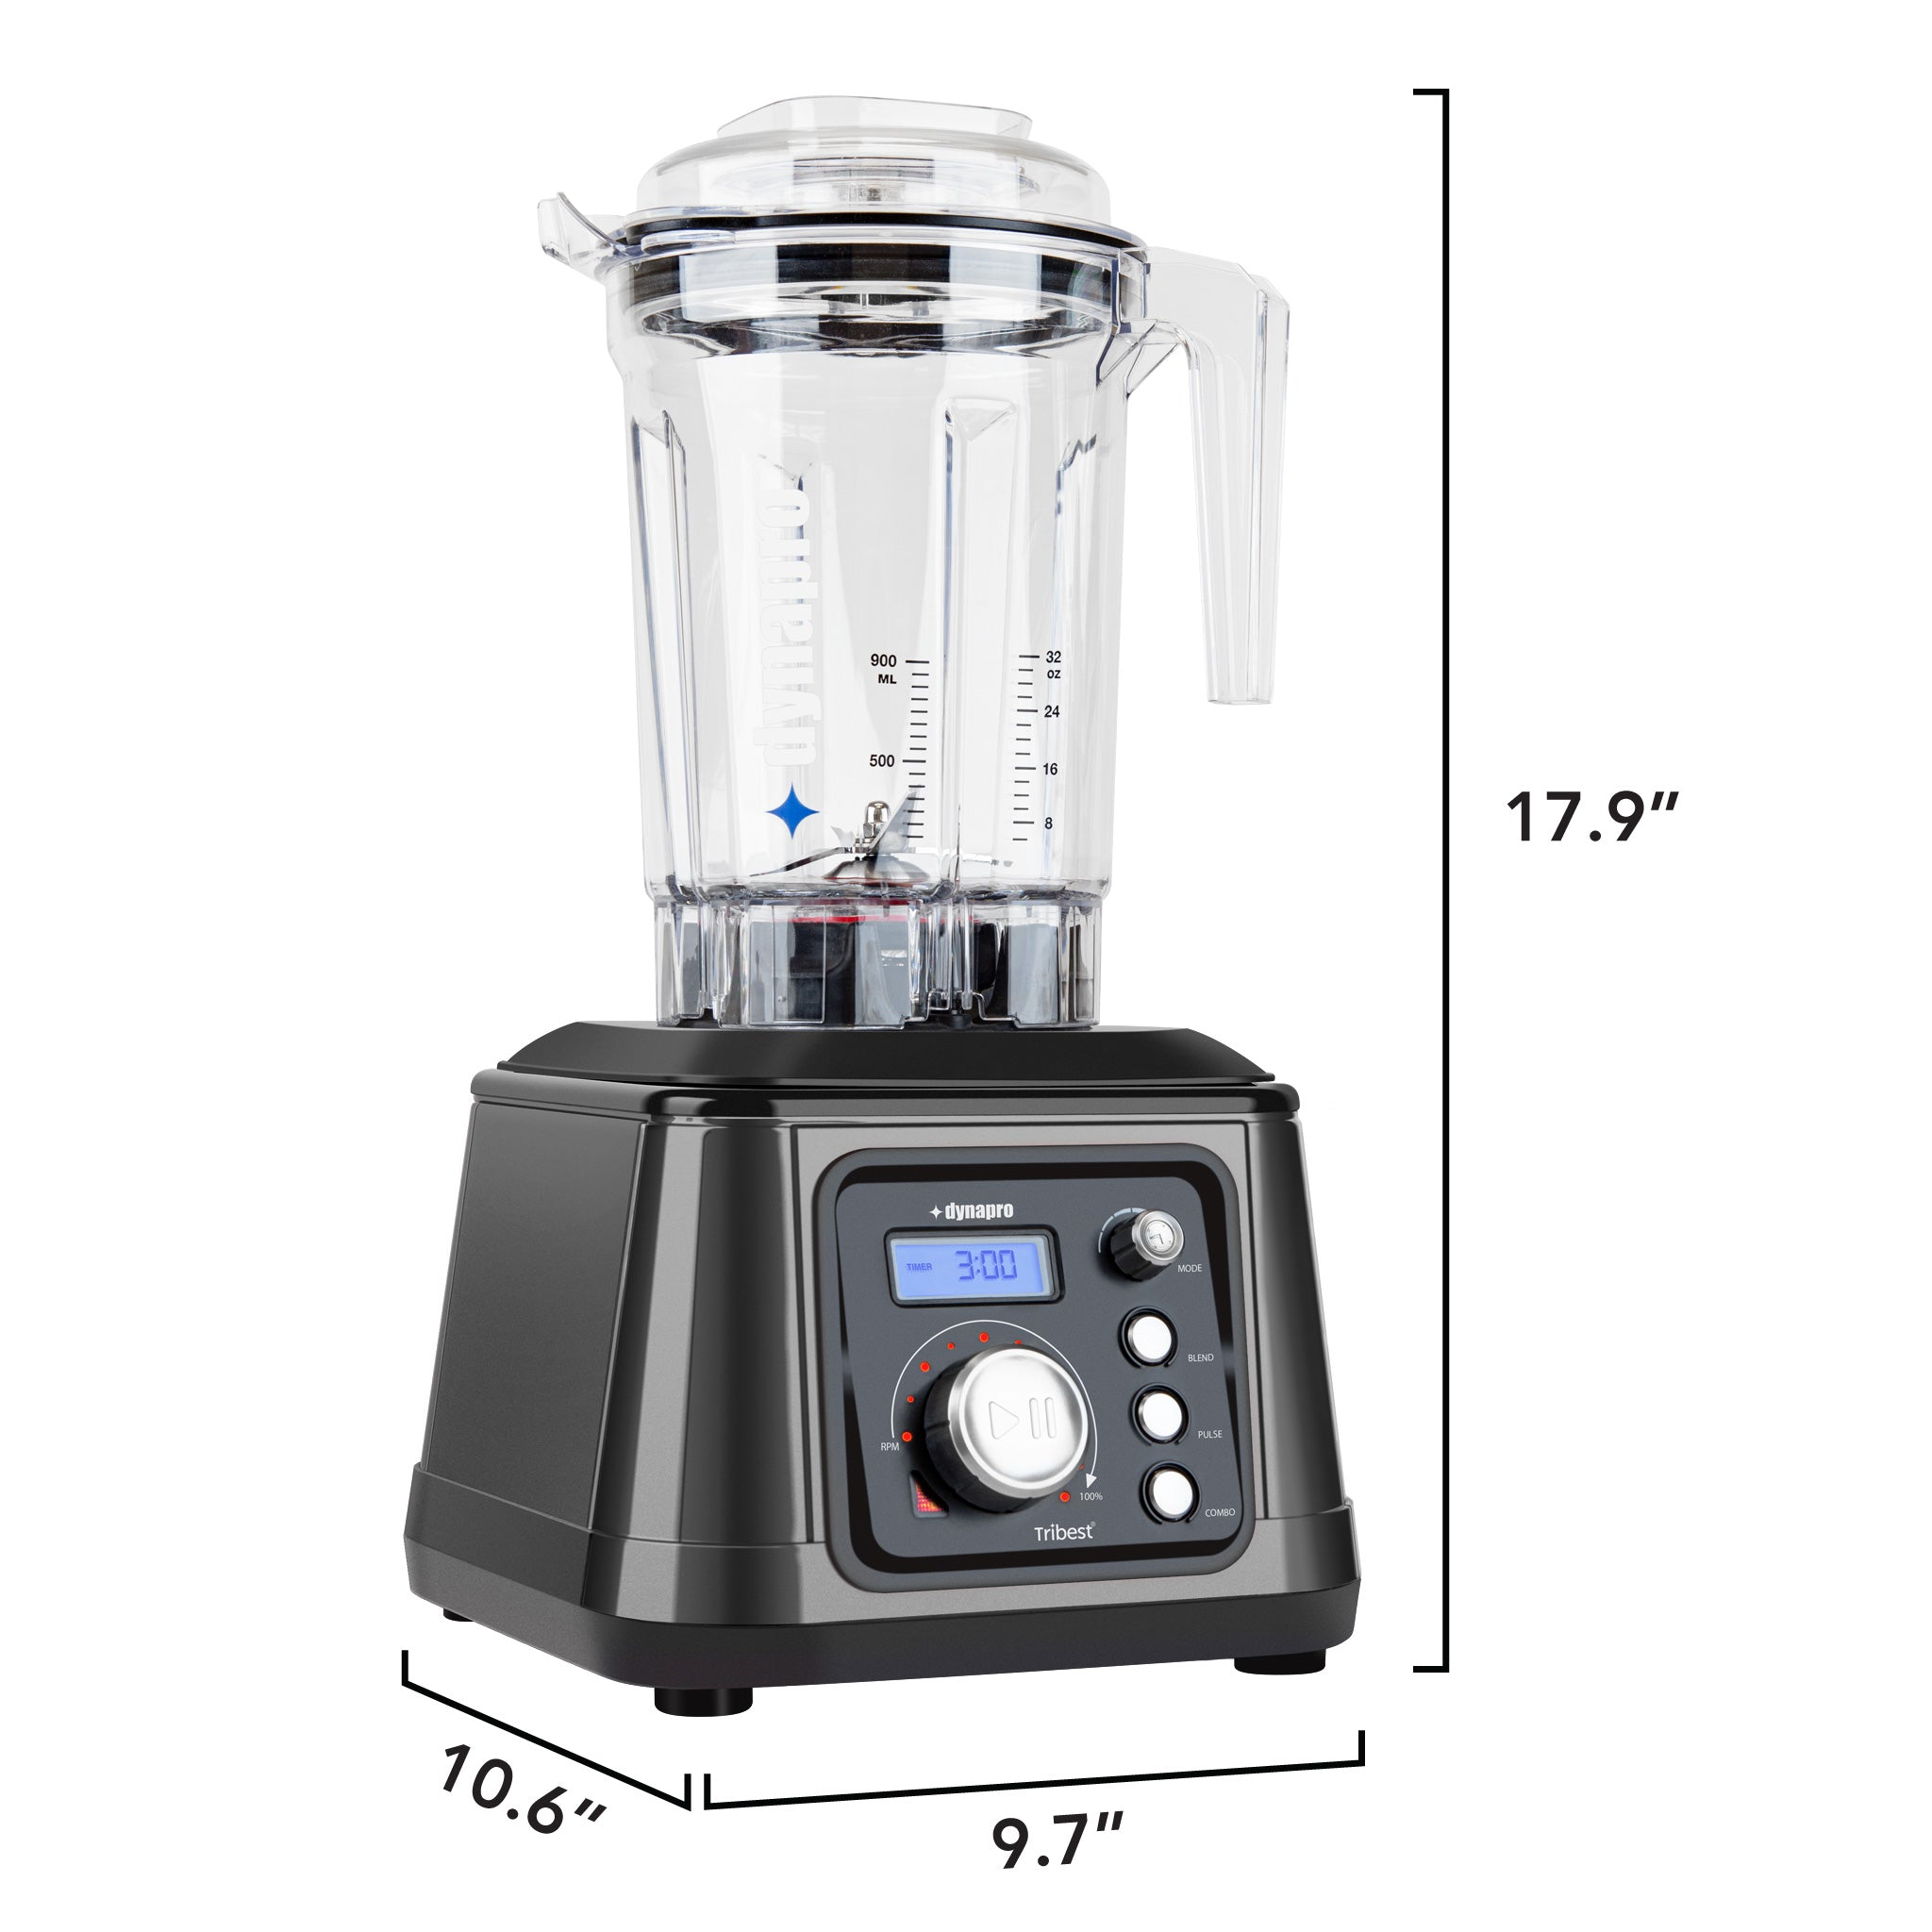 "Dynapro® Commercial High-Speed Blender in Gray - 10.6"" x 9.7"" x 17.9"""